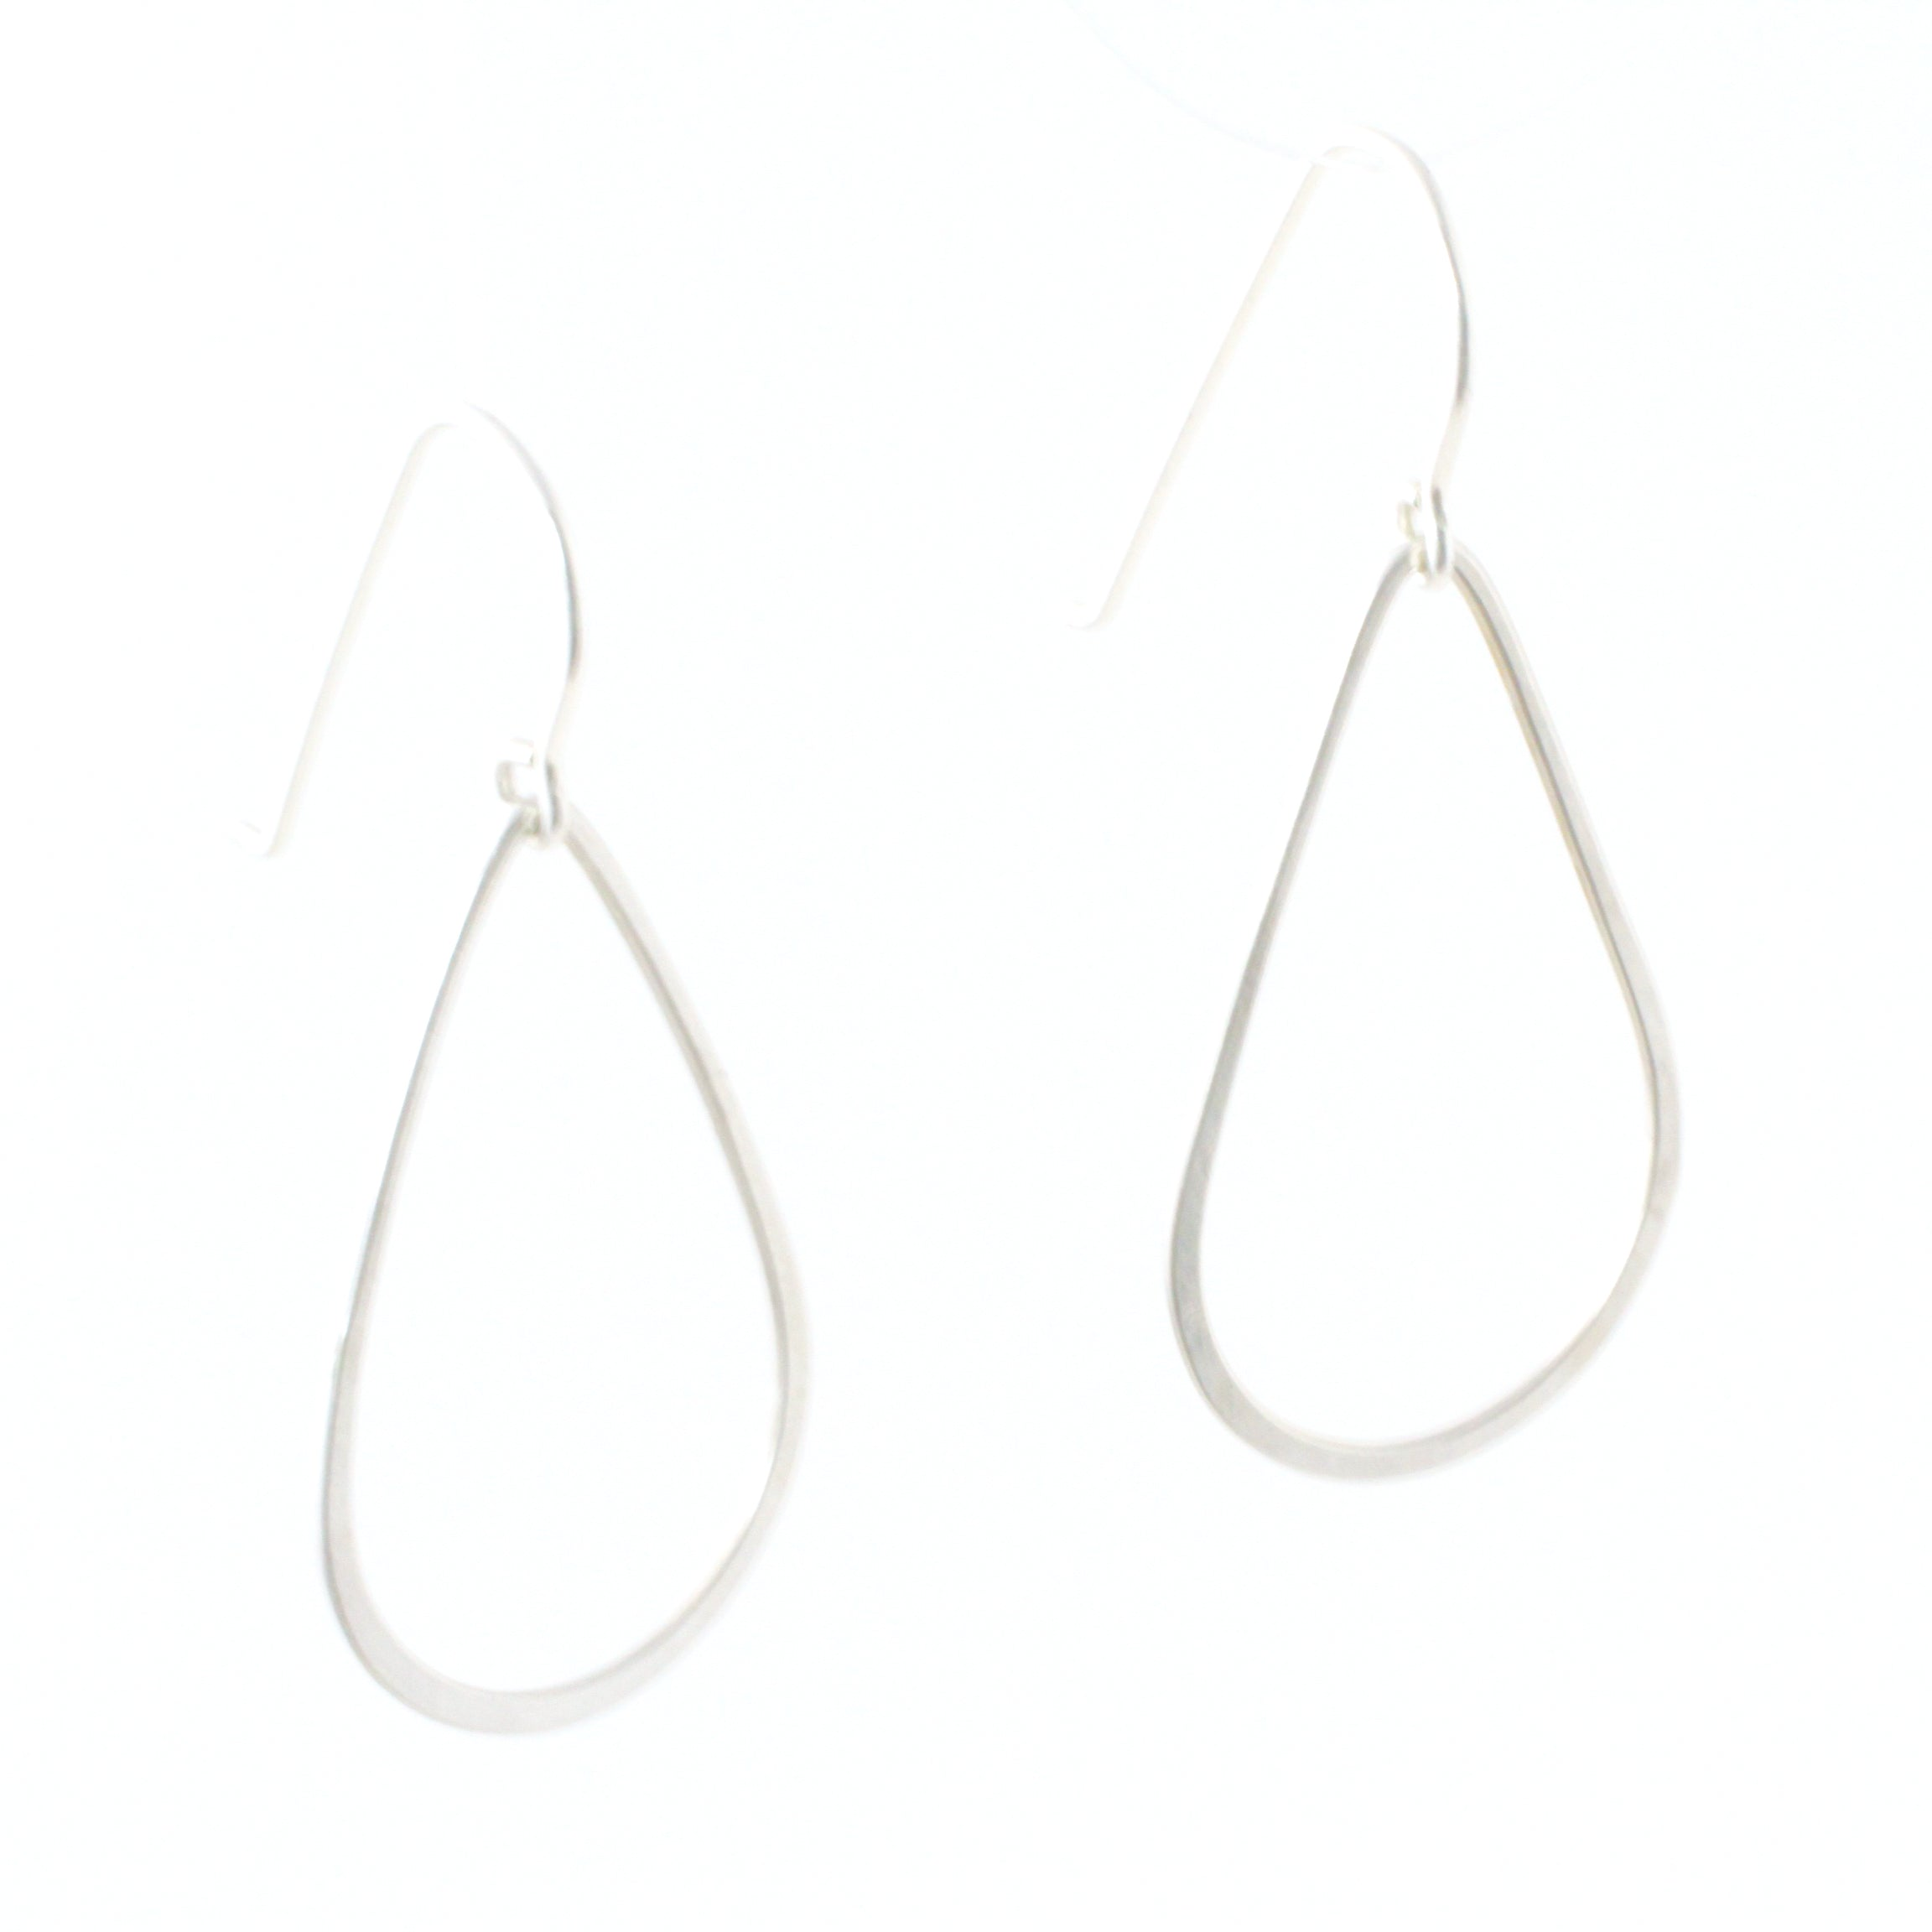 Large size sterling silver teardrop shaped earrings.